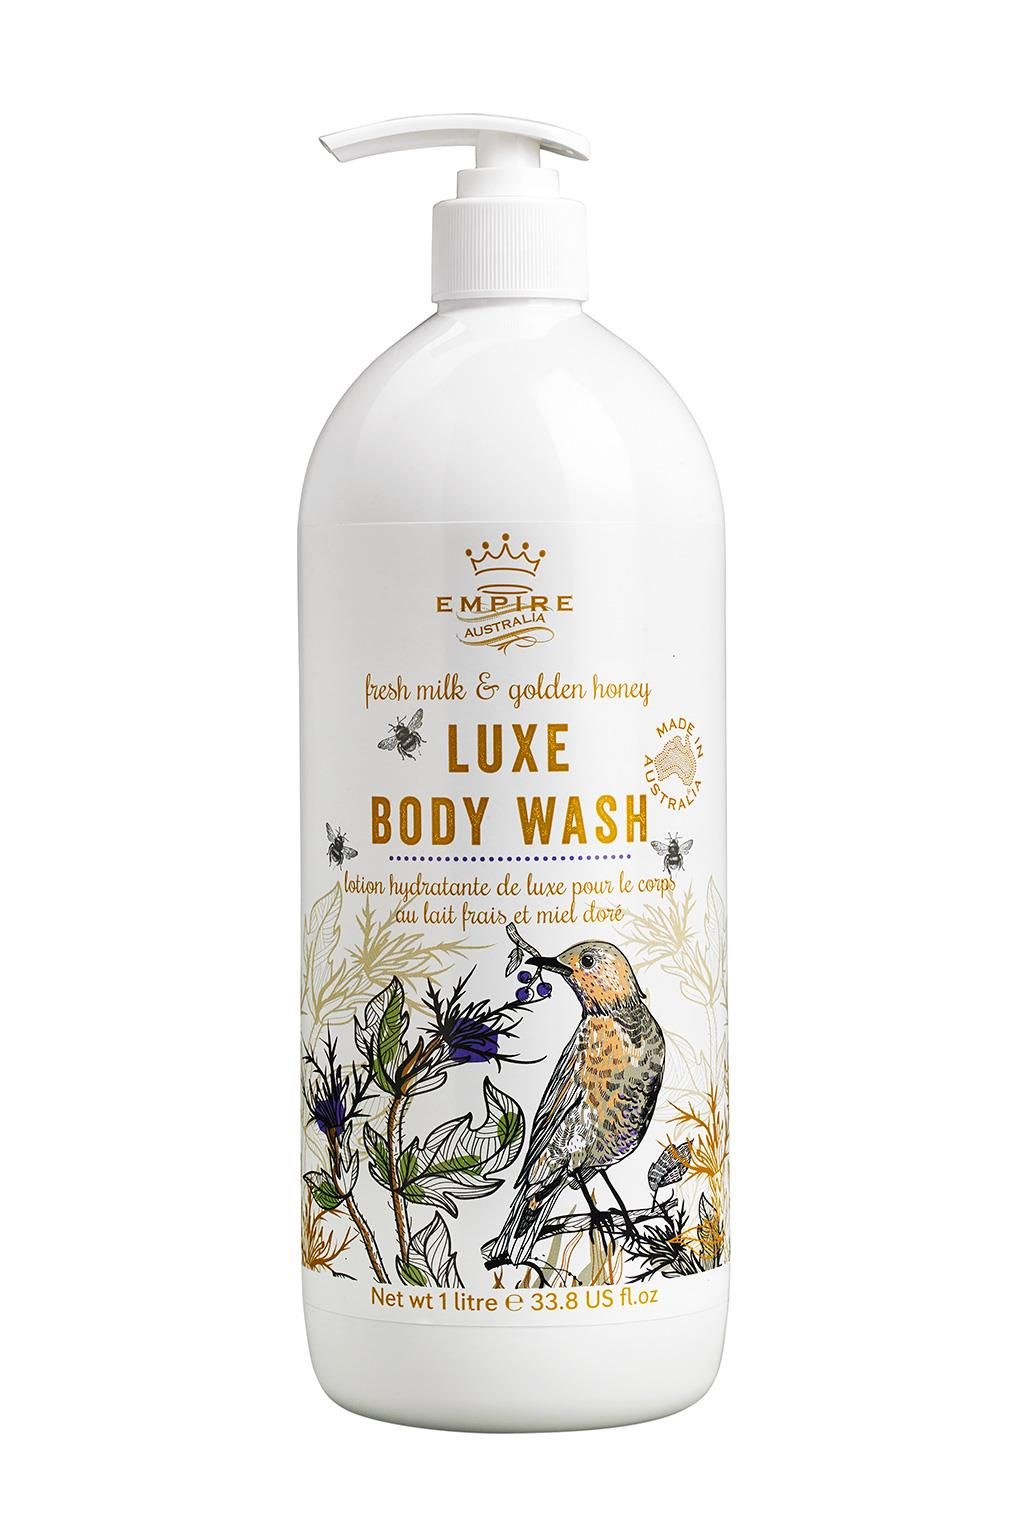 Bird Series Luxe Body Wash 1L - 2 scents